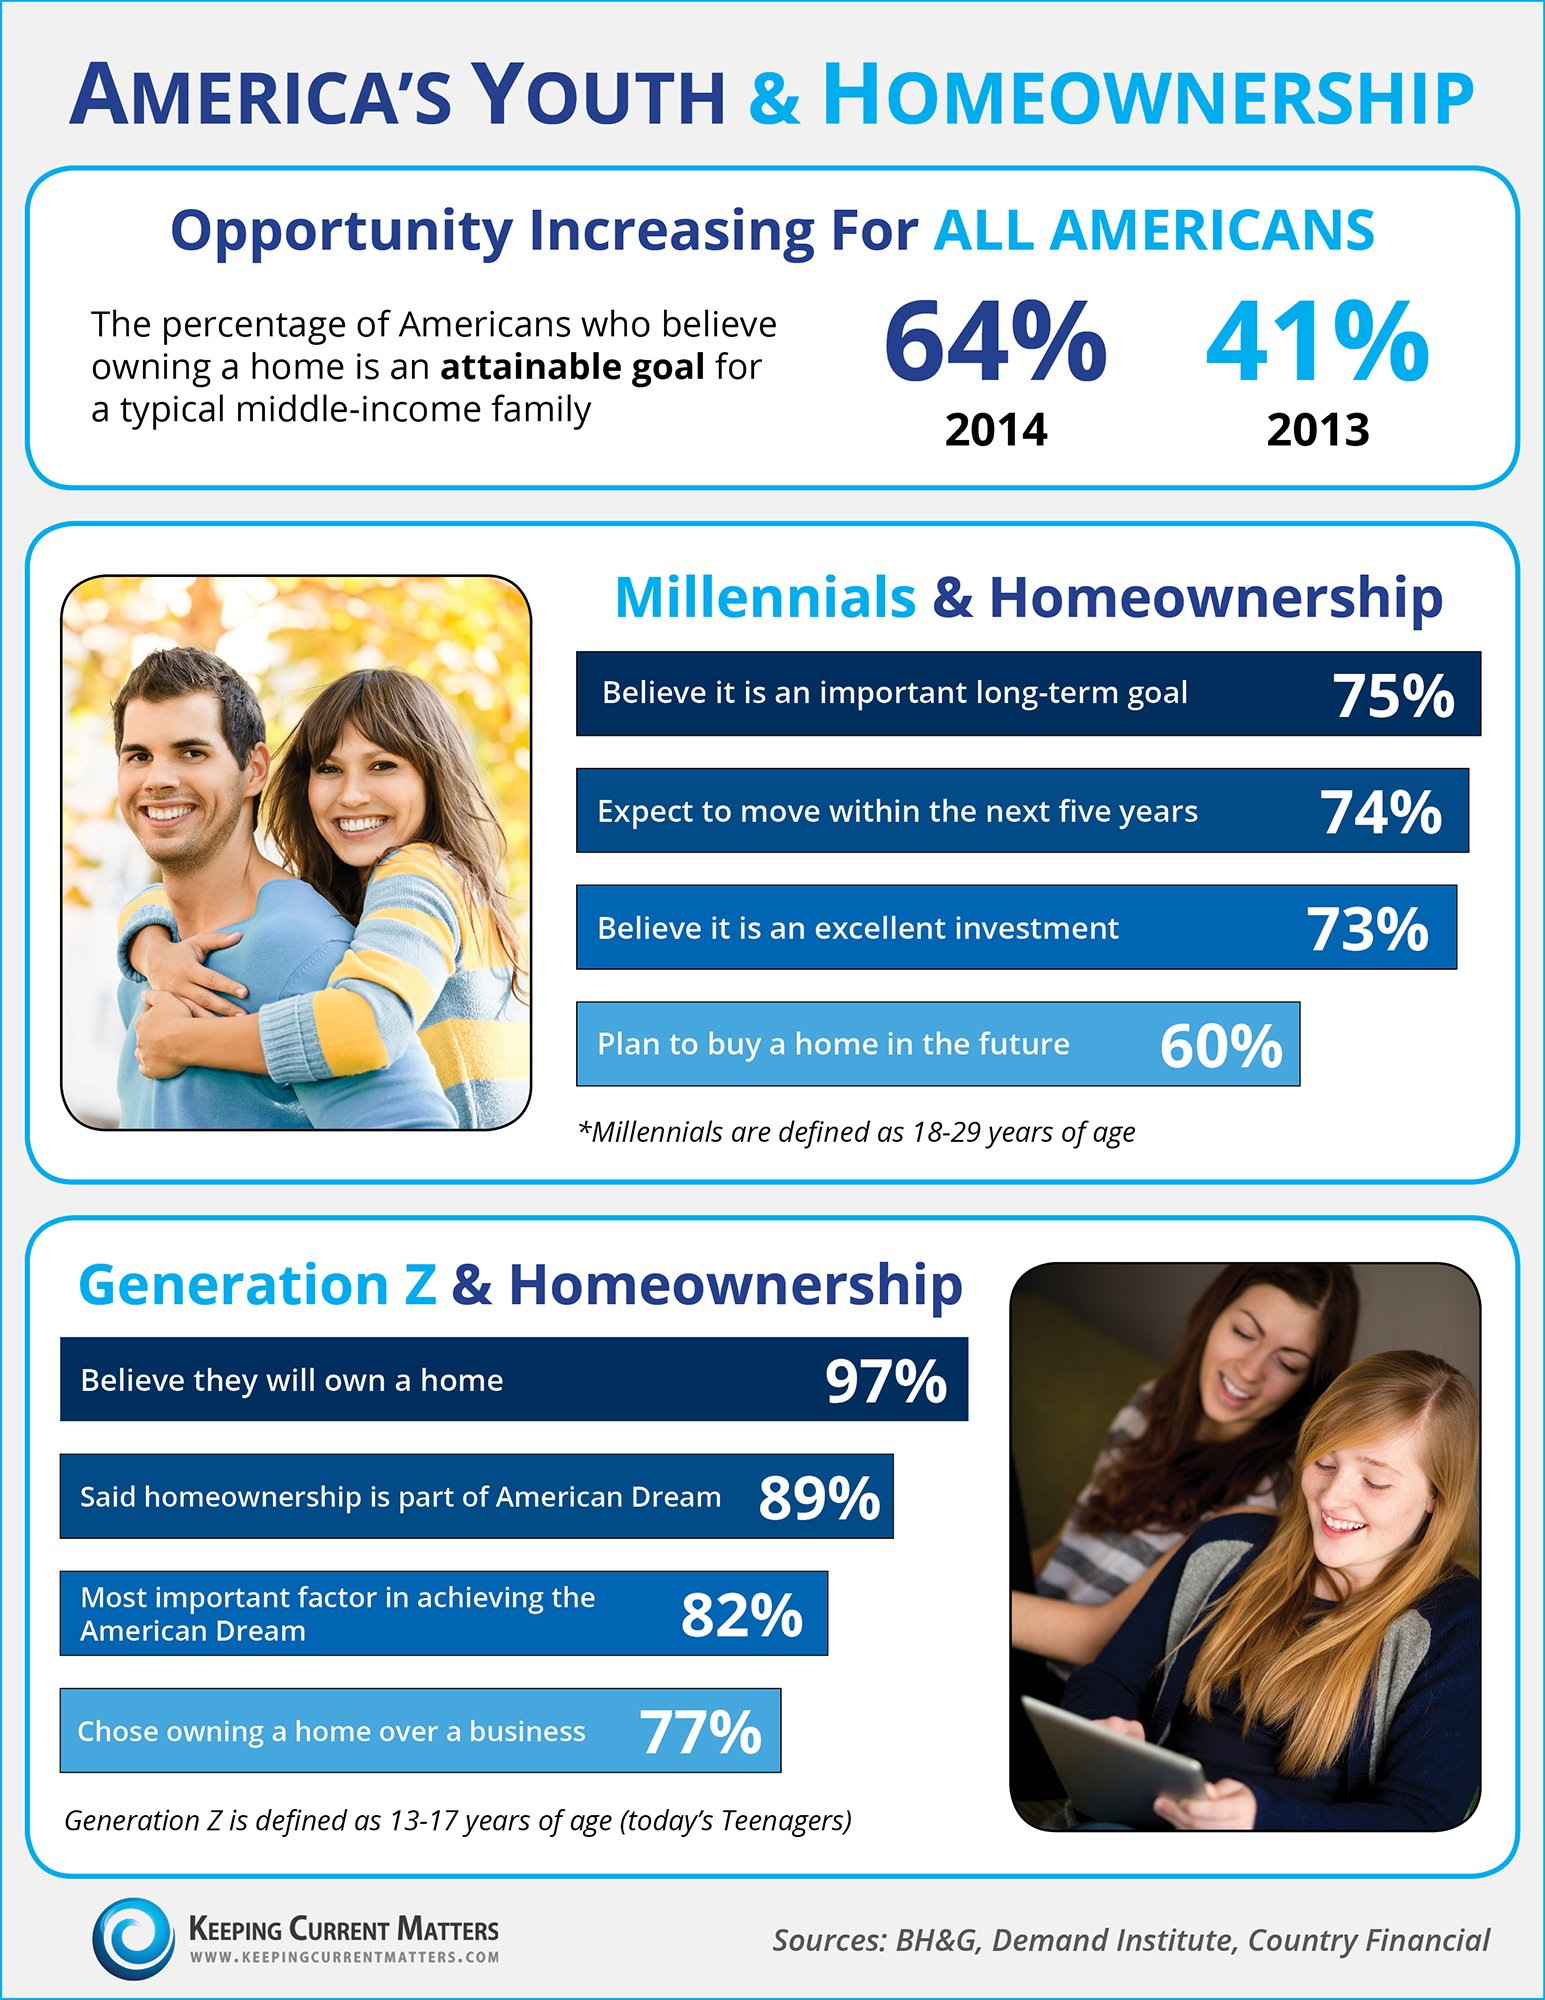 Youth & Homeownership [INFOGRAPHIC]   Keeping Current Matters